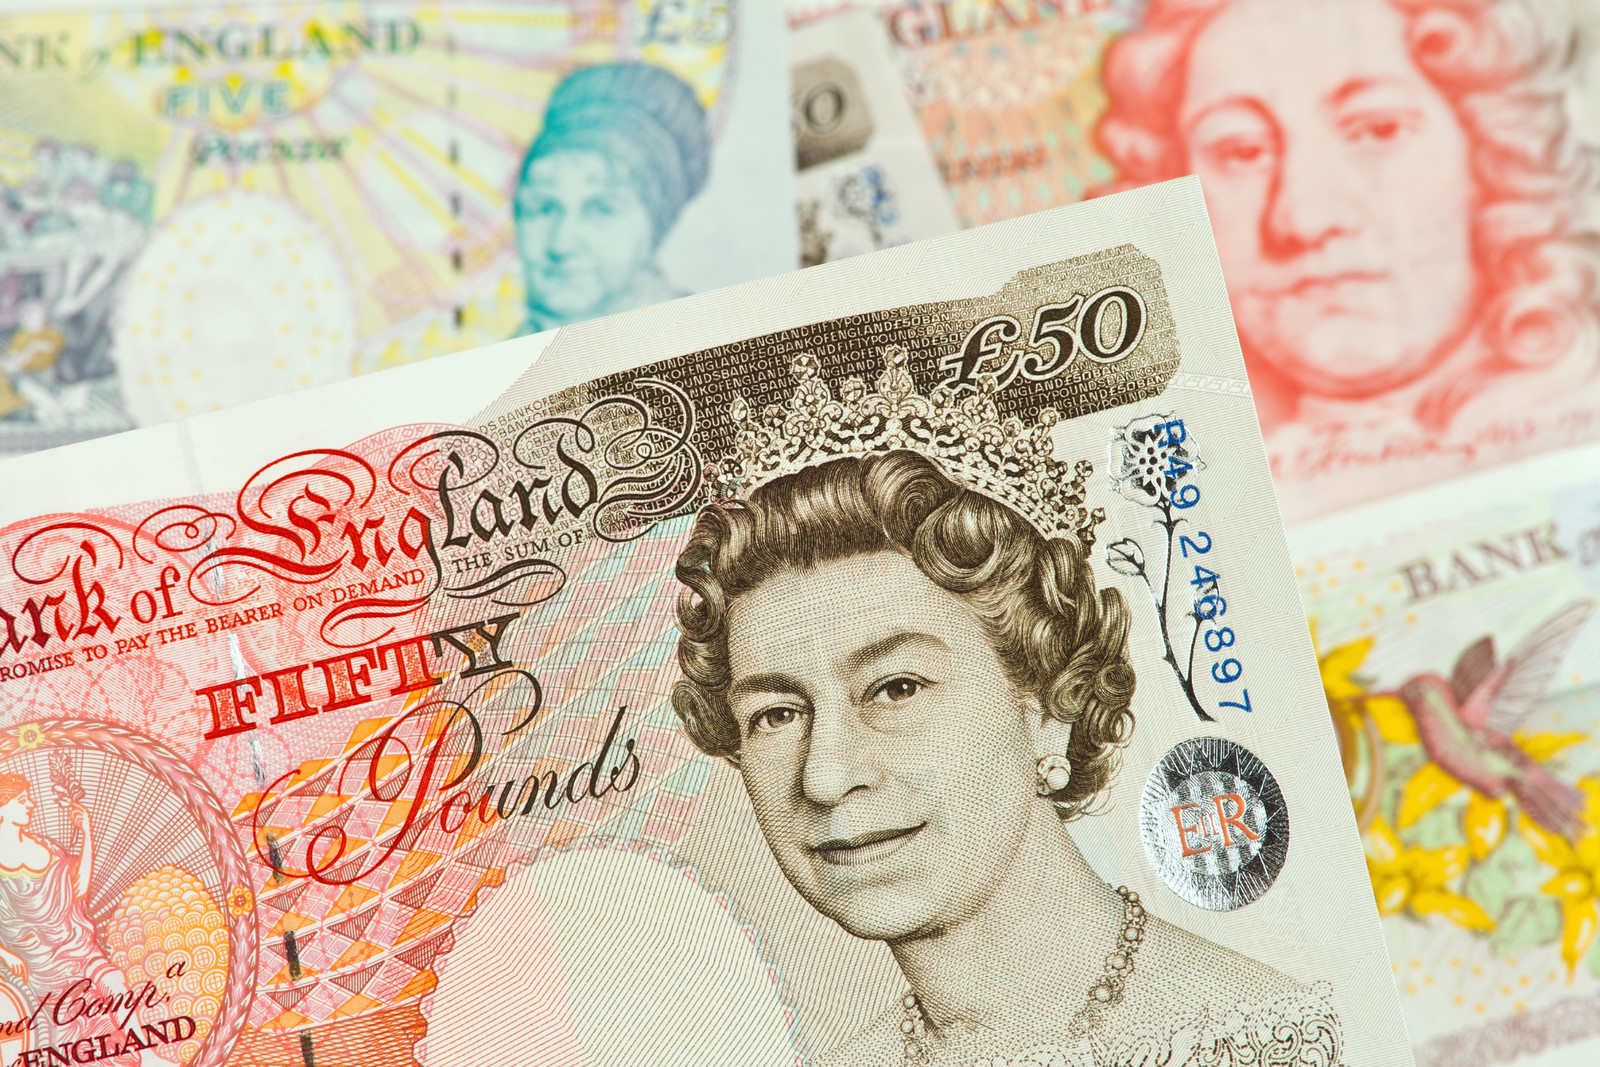 Bullish Gamechanger from a British Pound?